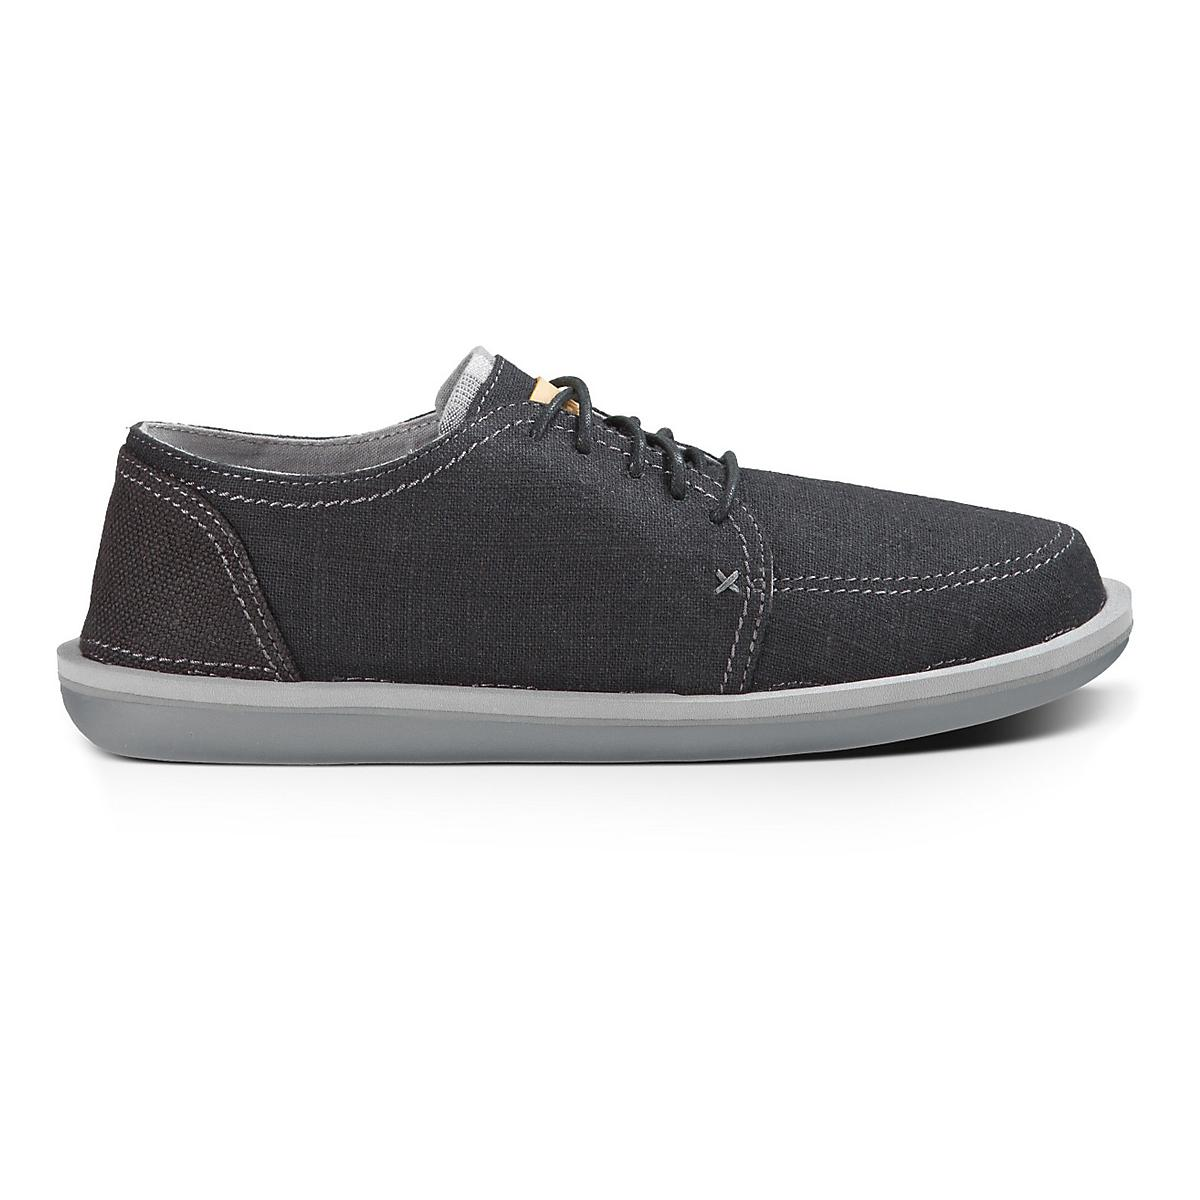 Men's Sanuk�Vista